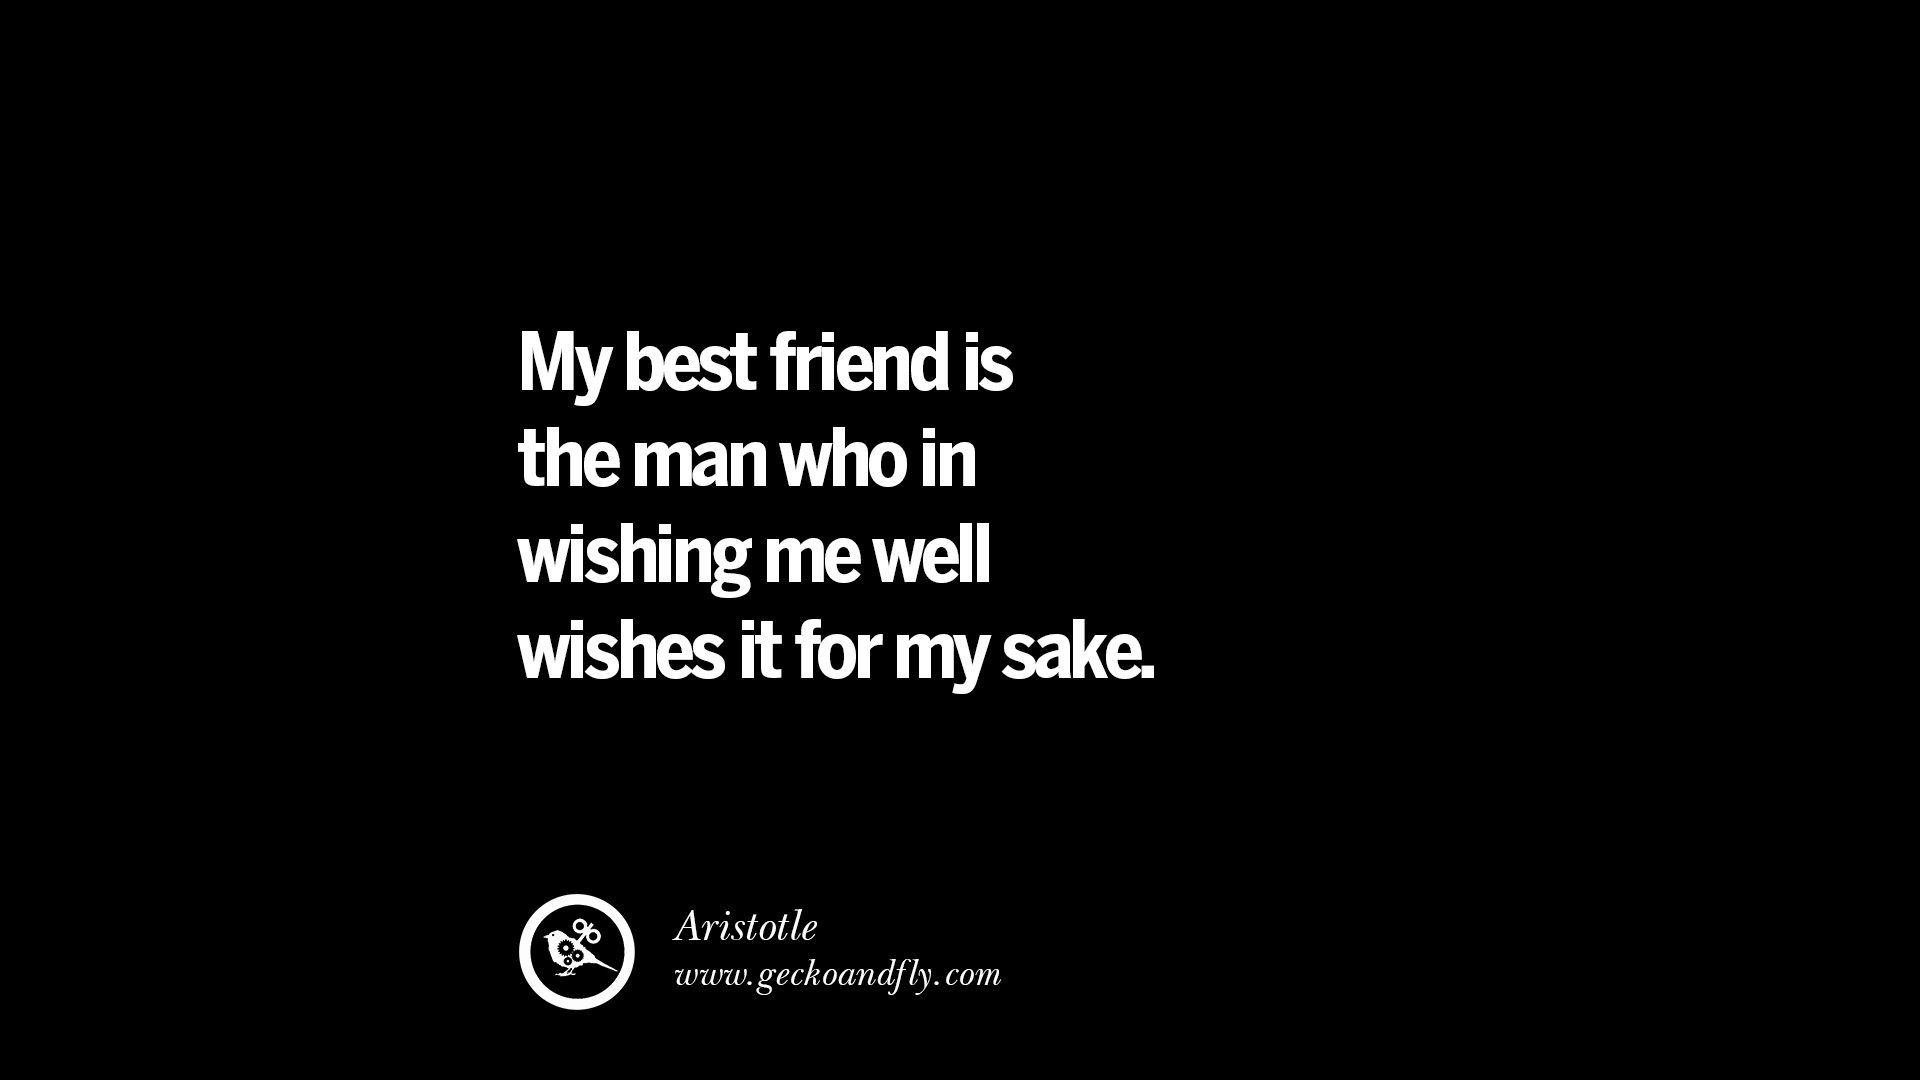 Quotes About Friendship 20 Amazing Quotes About Friendship Love And Friends  Geckoandfly 2018